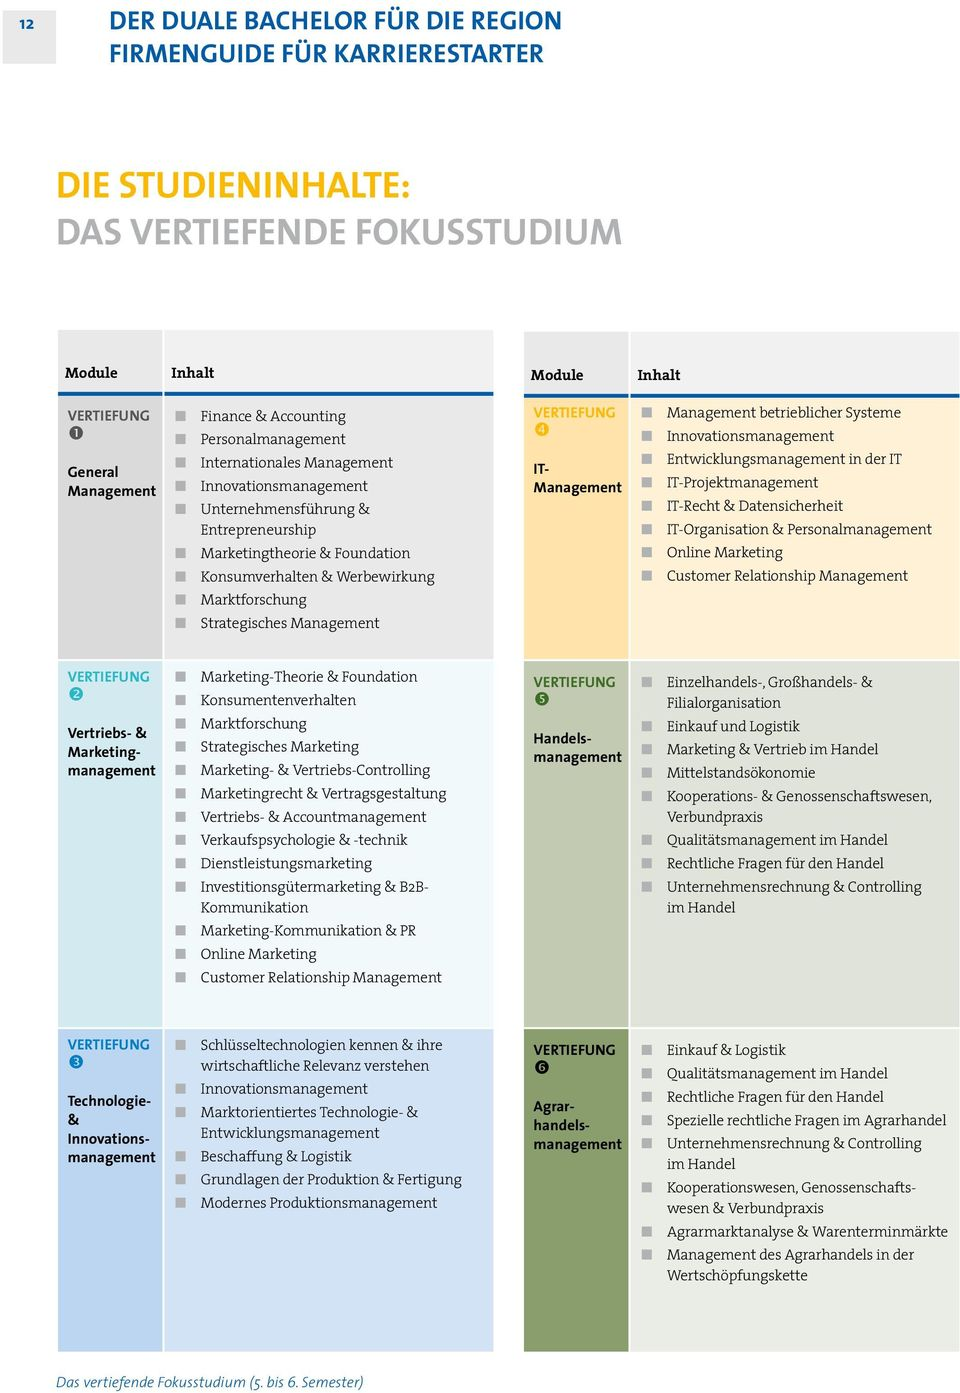 Management betrieblicher Systeme Innovationsmanagement Entwicklungsmanagement in der IT IT-Projektmanagement IT-Recht & Datensicherheit IT-Organisation & Personal management Online Marketing Customer